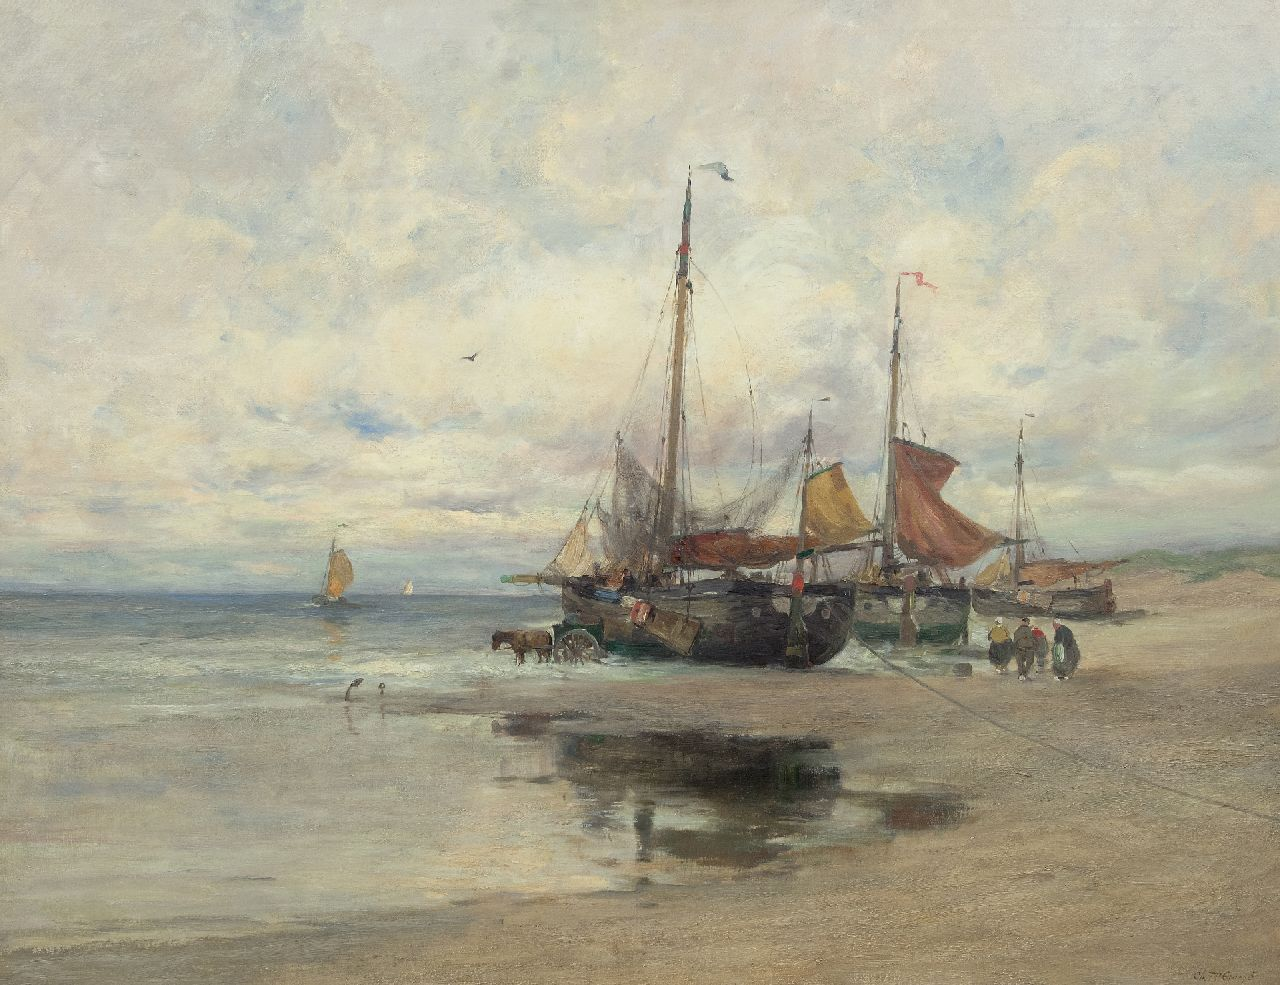 Gruppe C.P.  | Charles Paul Gruppe, Fishing boats on the beach, oil on canvas 101.7 x 131.8 cm, signed l.r. and painted ca. 1910